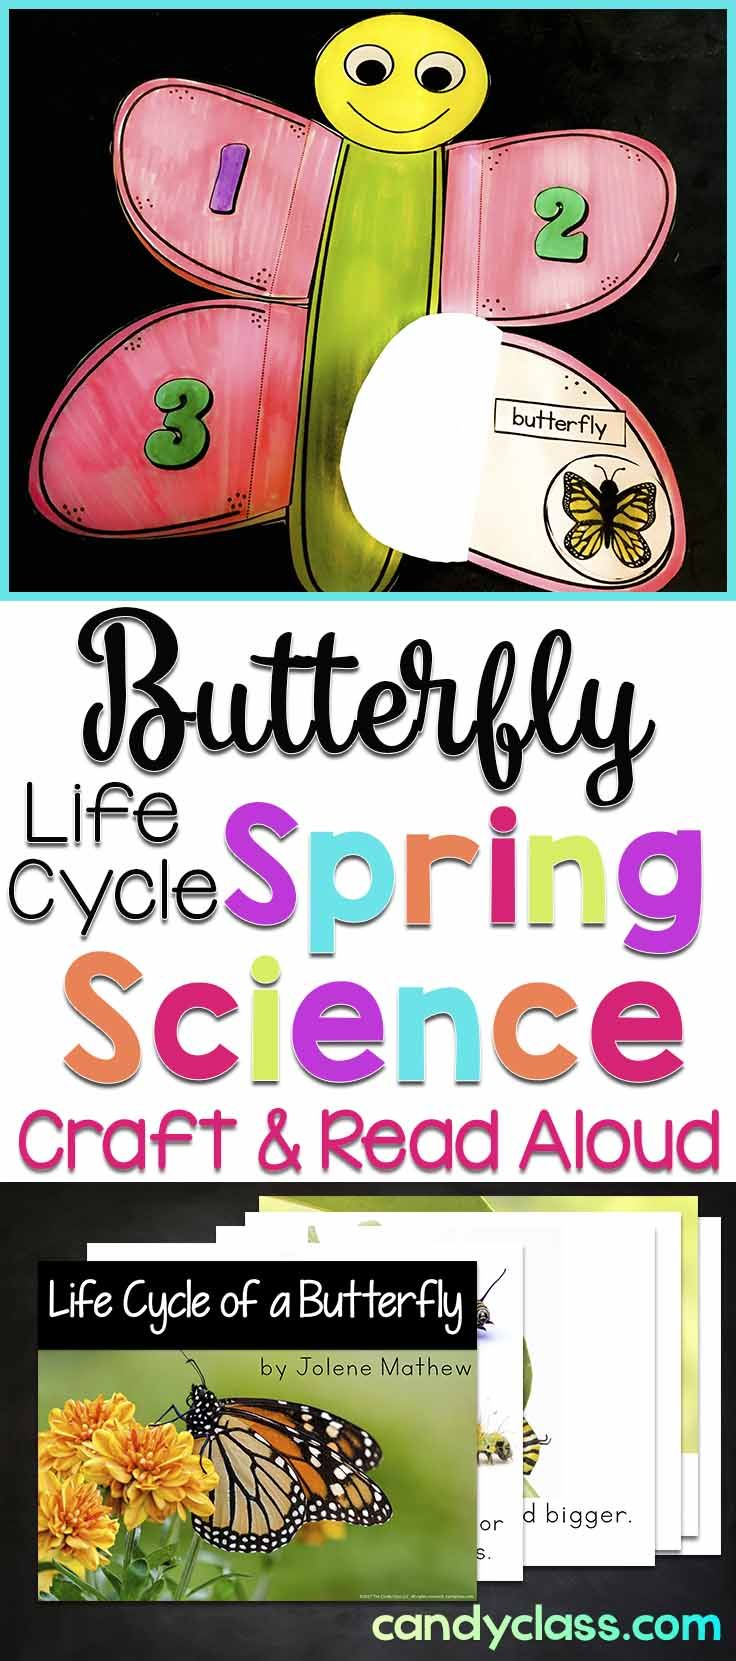 With this fun butterfly craft, students add details about the life cycle of a butterfly. There is also a non-fiction read aloud book that you can project on your Smartboard or print to read. This fun craftivity and reading response activity is perfect for some spring science learning. Use with kindergarten, first grade, and 2nd grade classrooms.